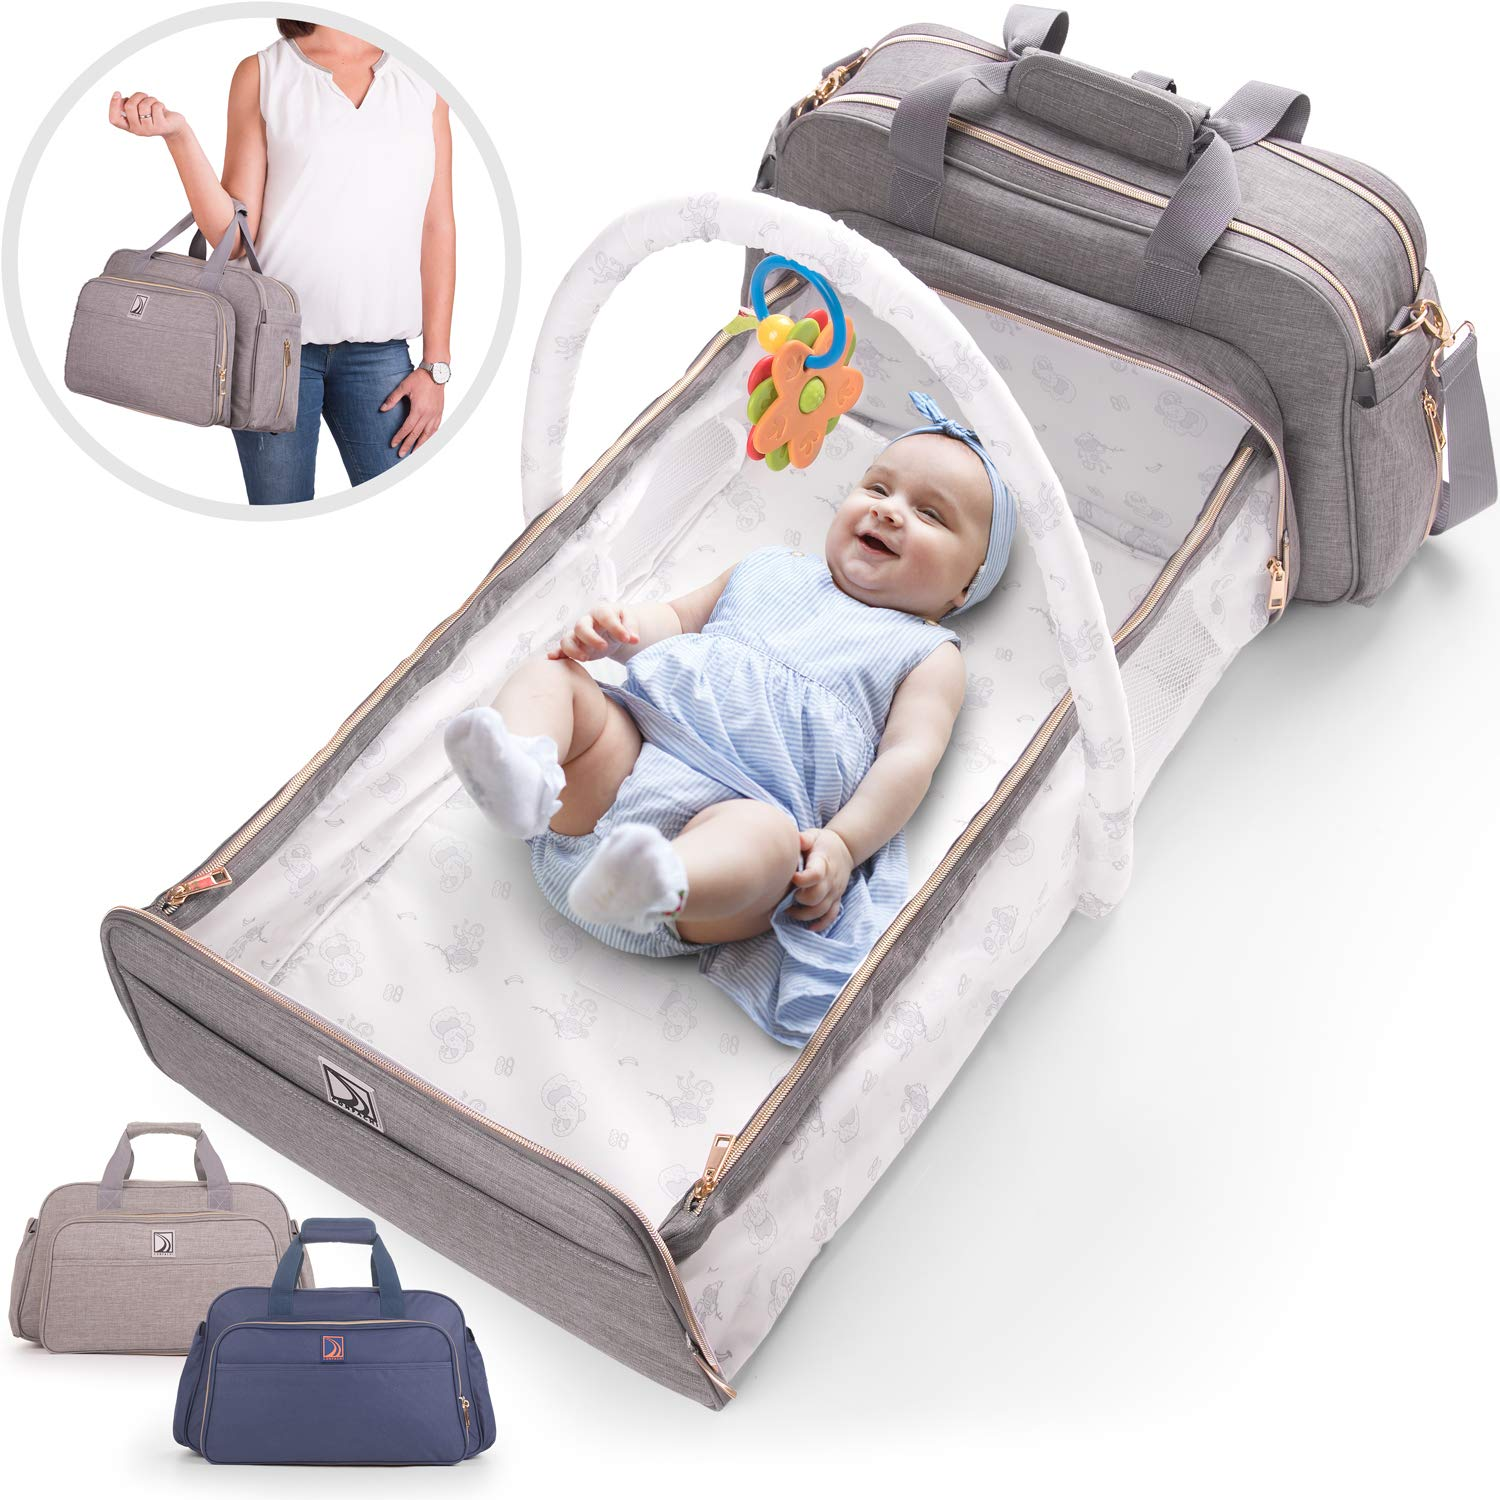 gifts-for0new-mom-travel-bag